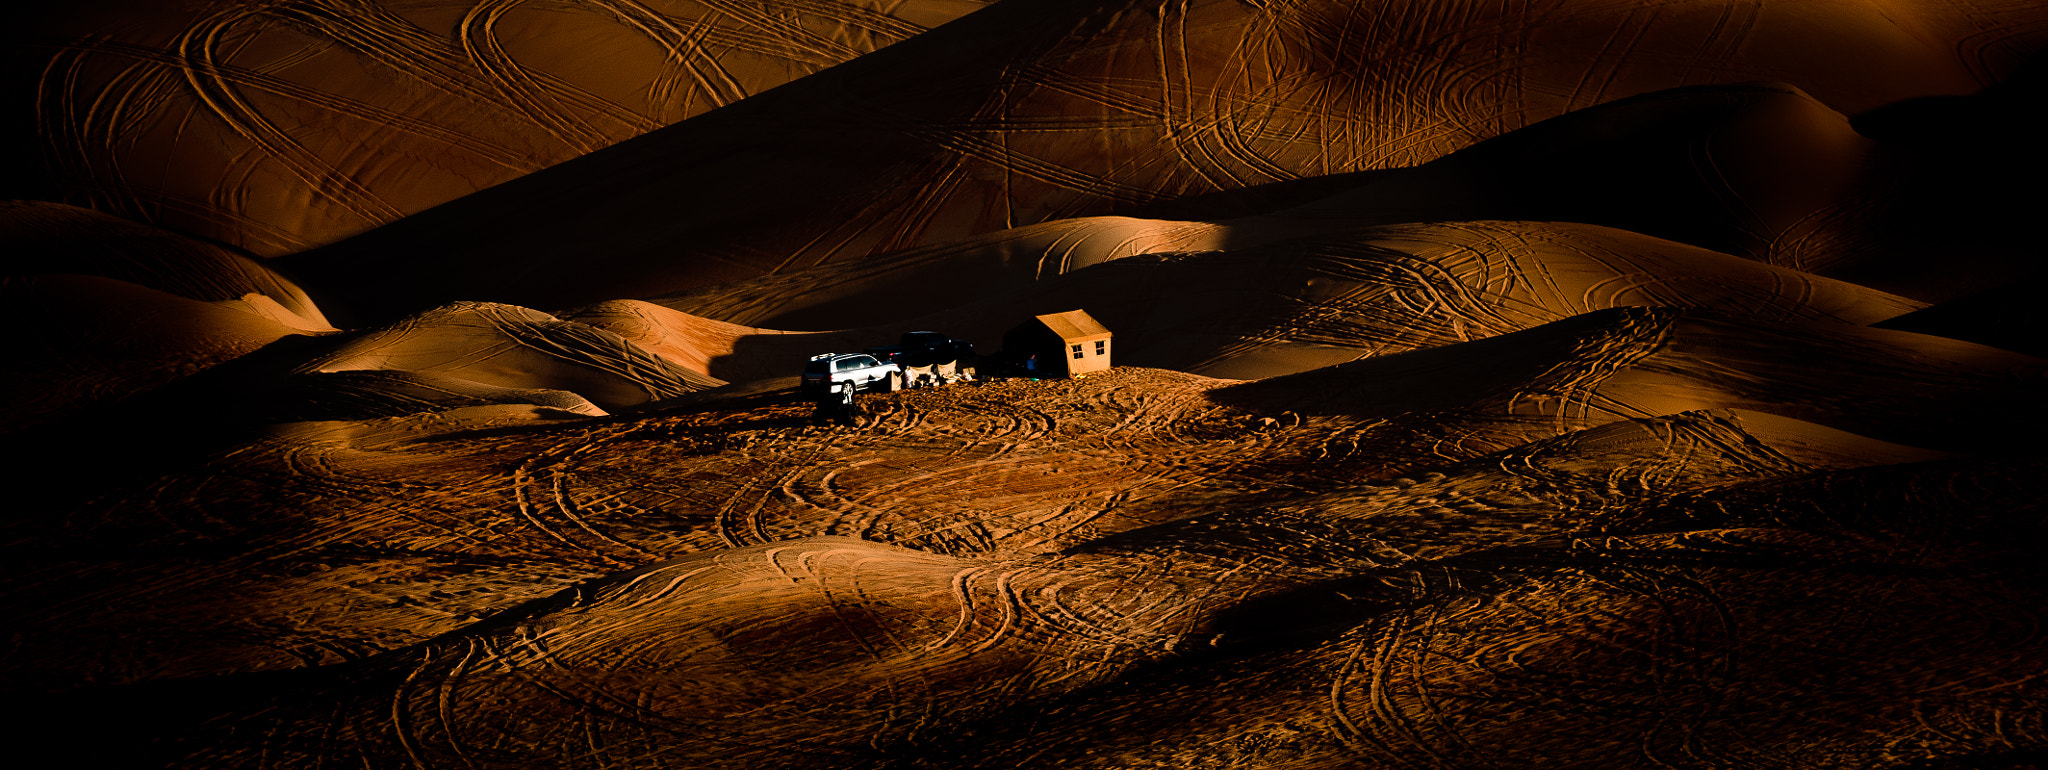 Photograph Encounter with the beauty of the desert by Adeeb Alani on 500px